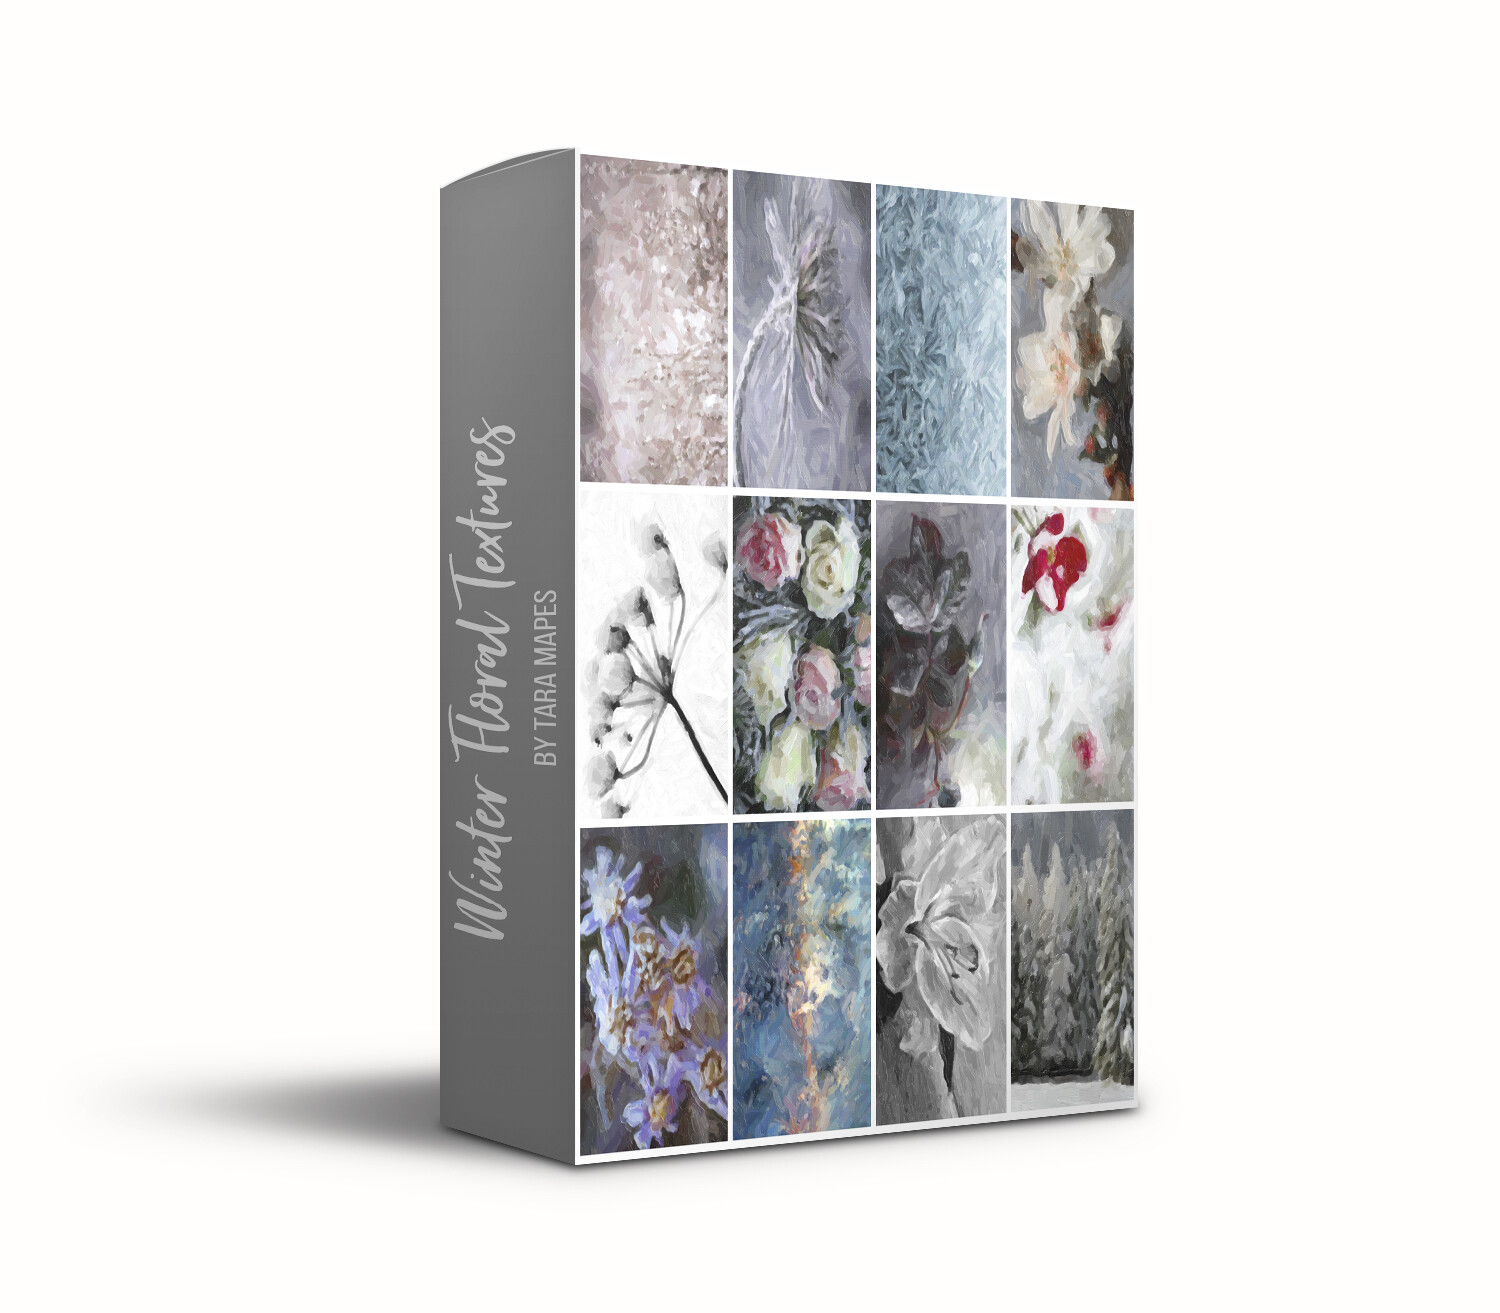 Winter Floral Collection 1 Fine Art 12 Texture Overlays - Oil Paint Floral Textures Photoshop Overlays by Tara Mapes